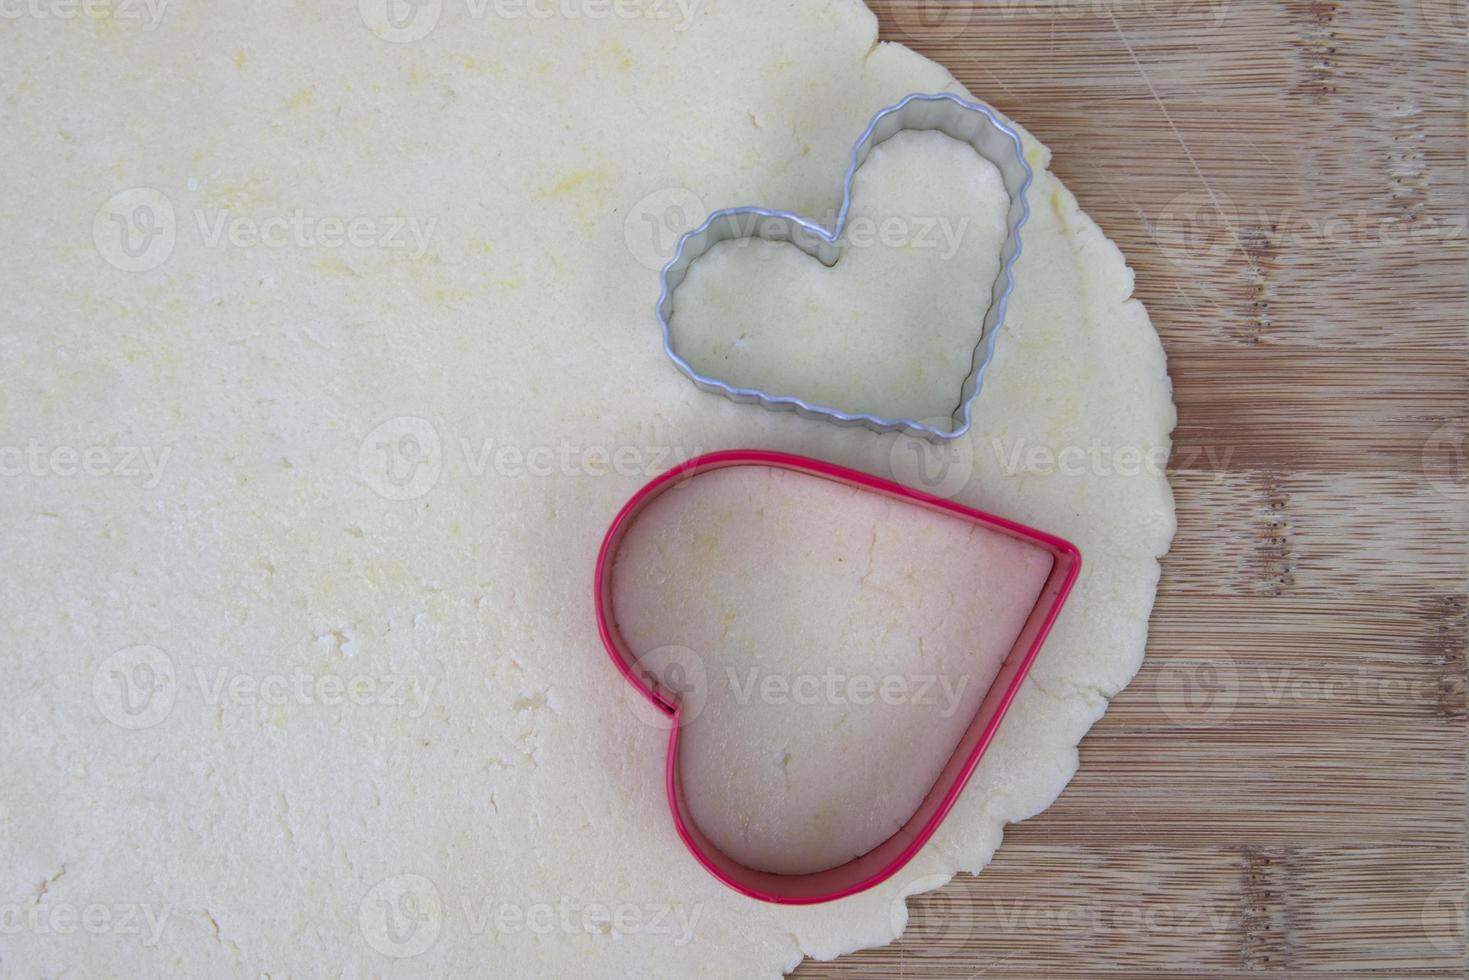 Sugar cookie dough with heart shaped cutters photo